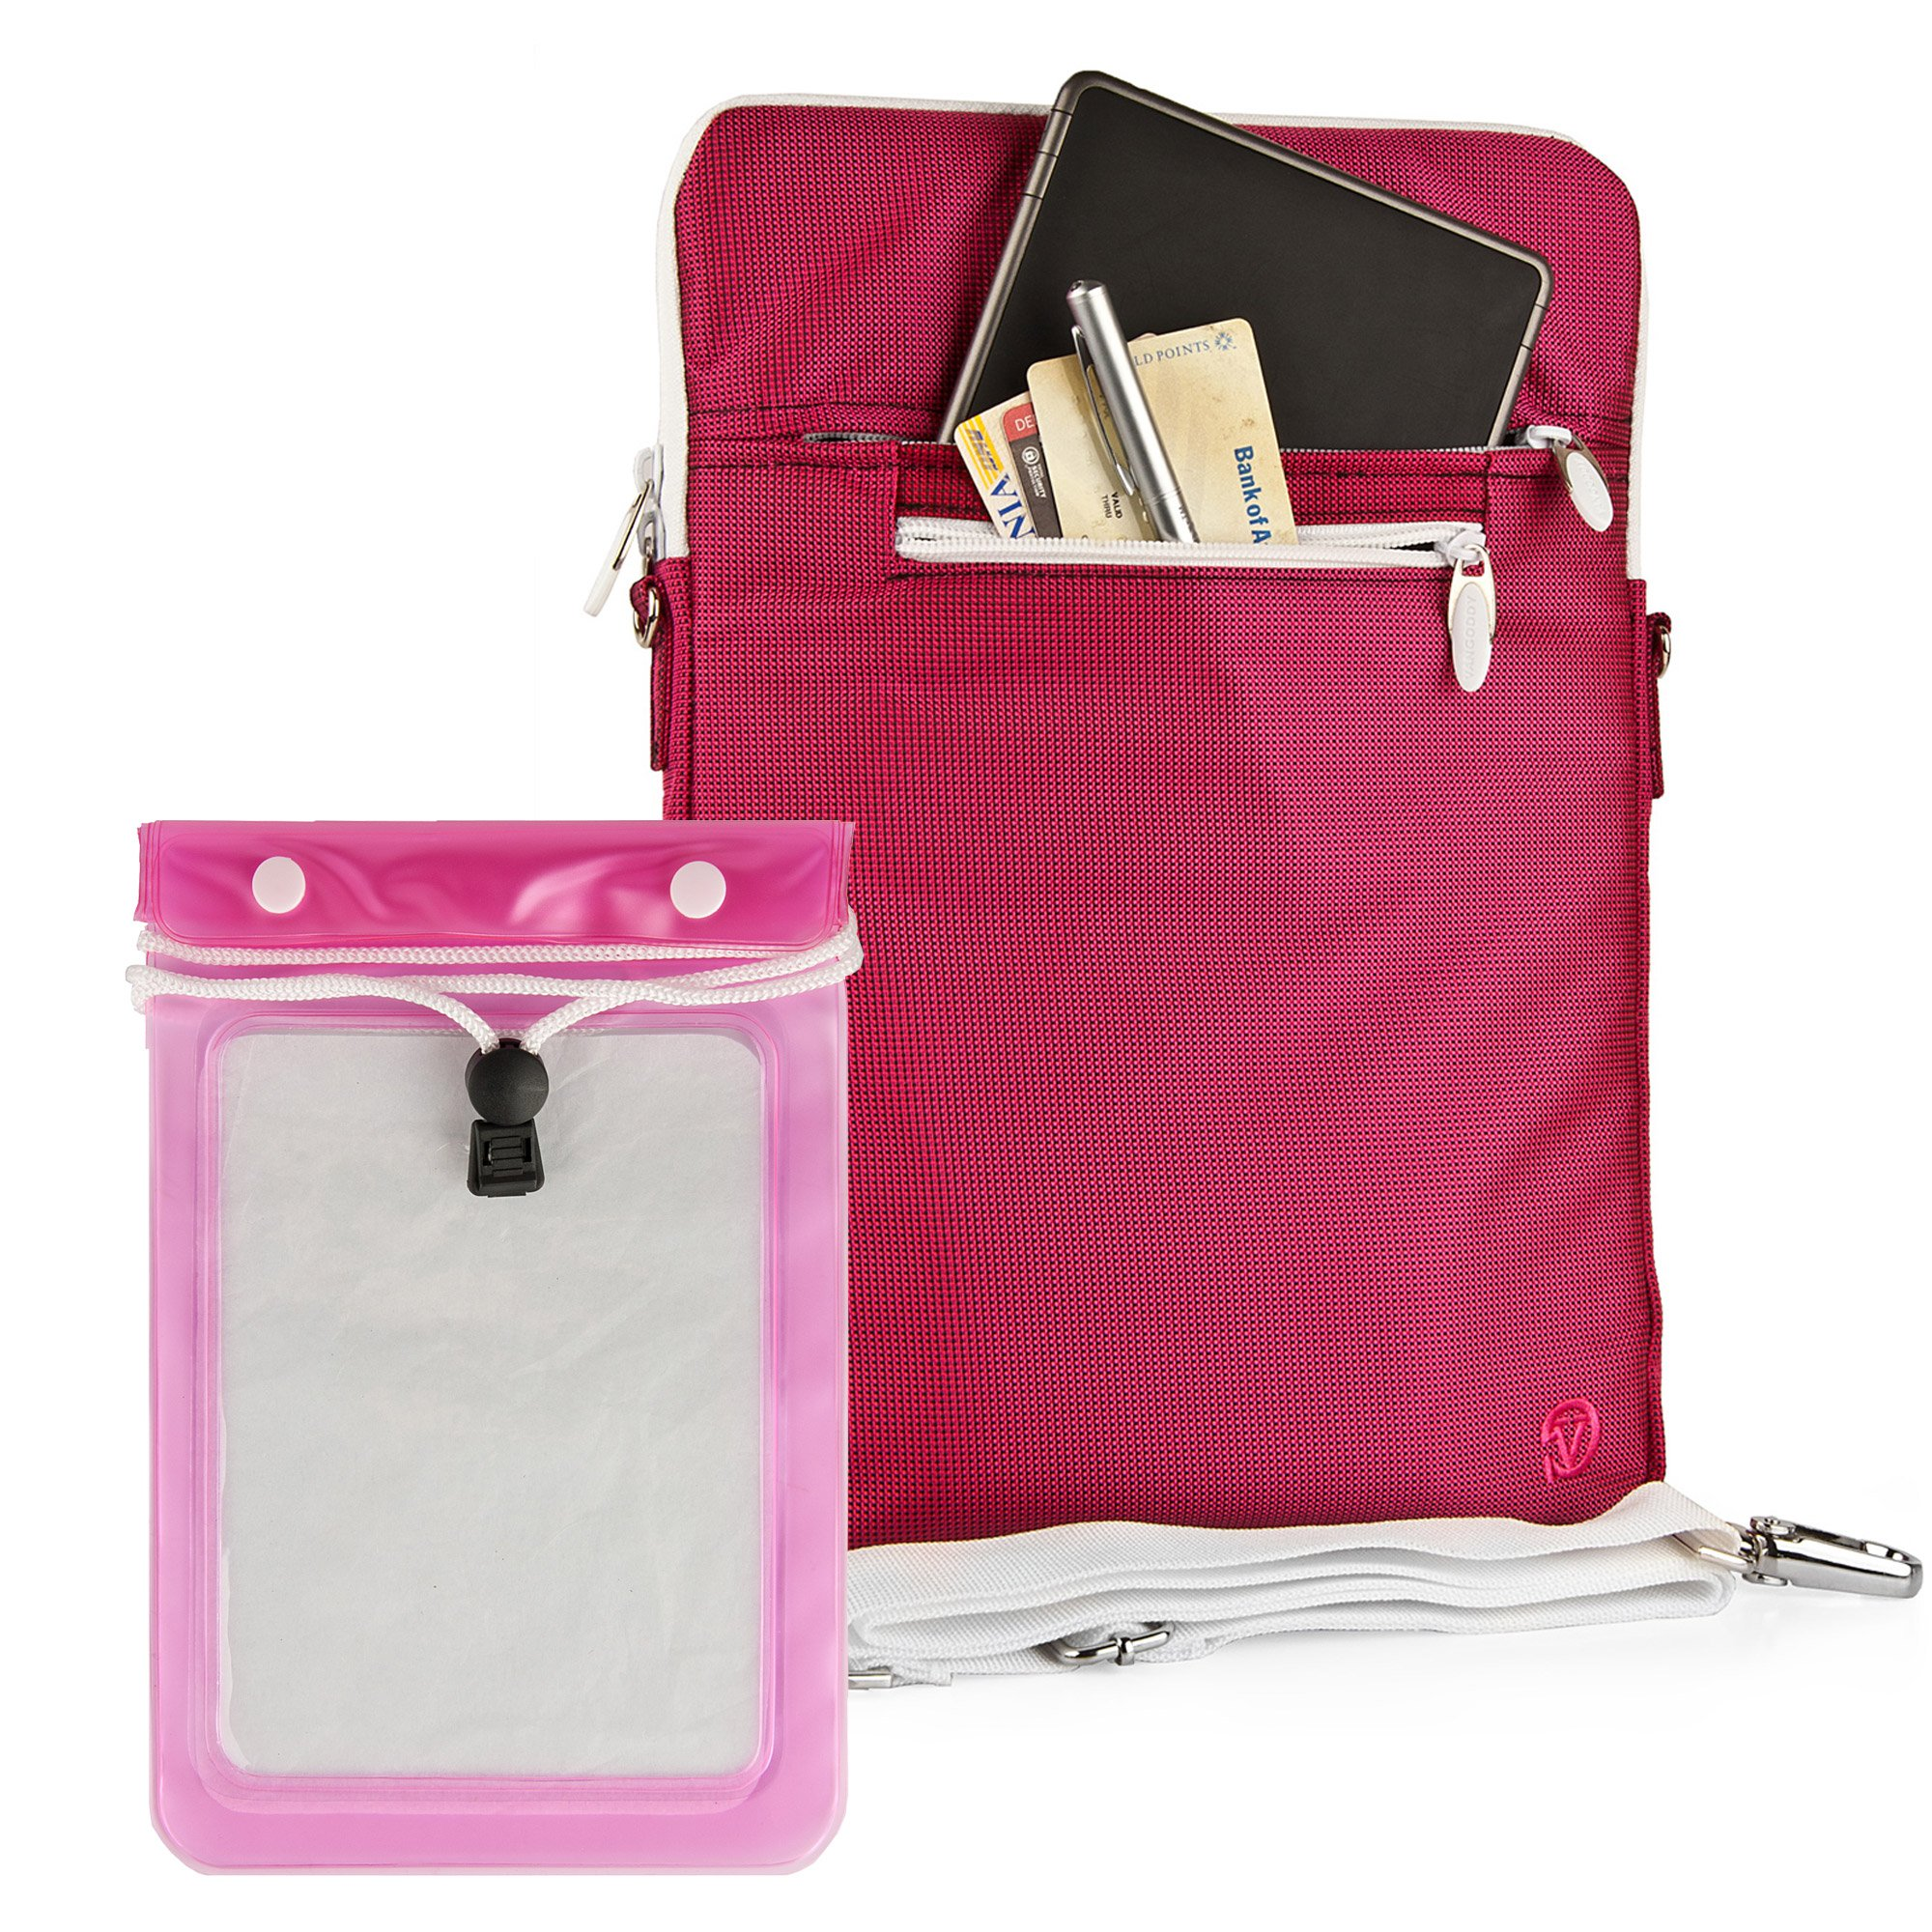 Quality Modern Messenger Style, Hot Magenta Vangoddy Select 10 Inch Hydei Clutch Sleeve Cover for All Models of the samsung galaxy tab 2 10.1 Inch (Galaxy Tab 2 10.1 Inch, Wifi, P5100, Android 4.0) + Waterproof Tablet Bag Case fits 8 - 10 inch Tablets